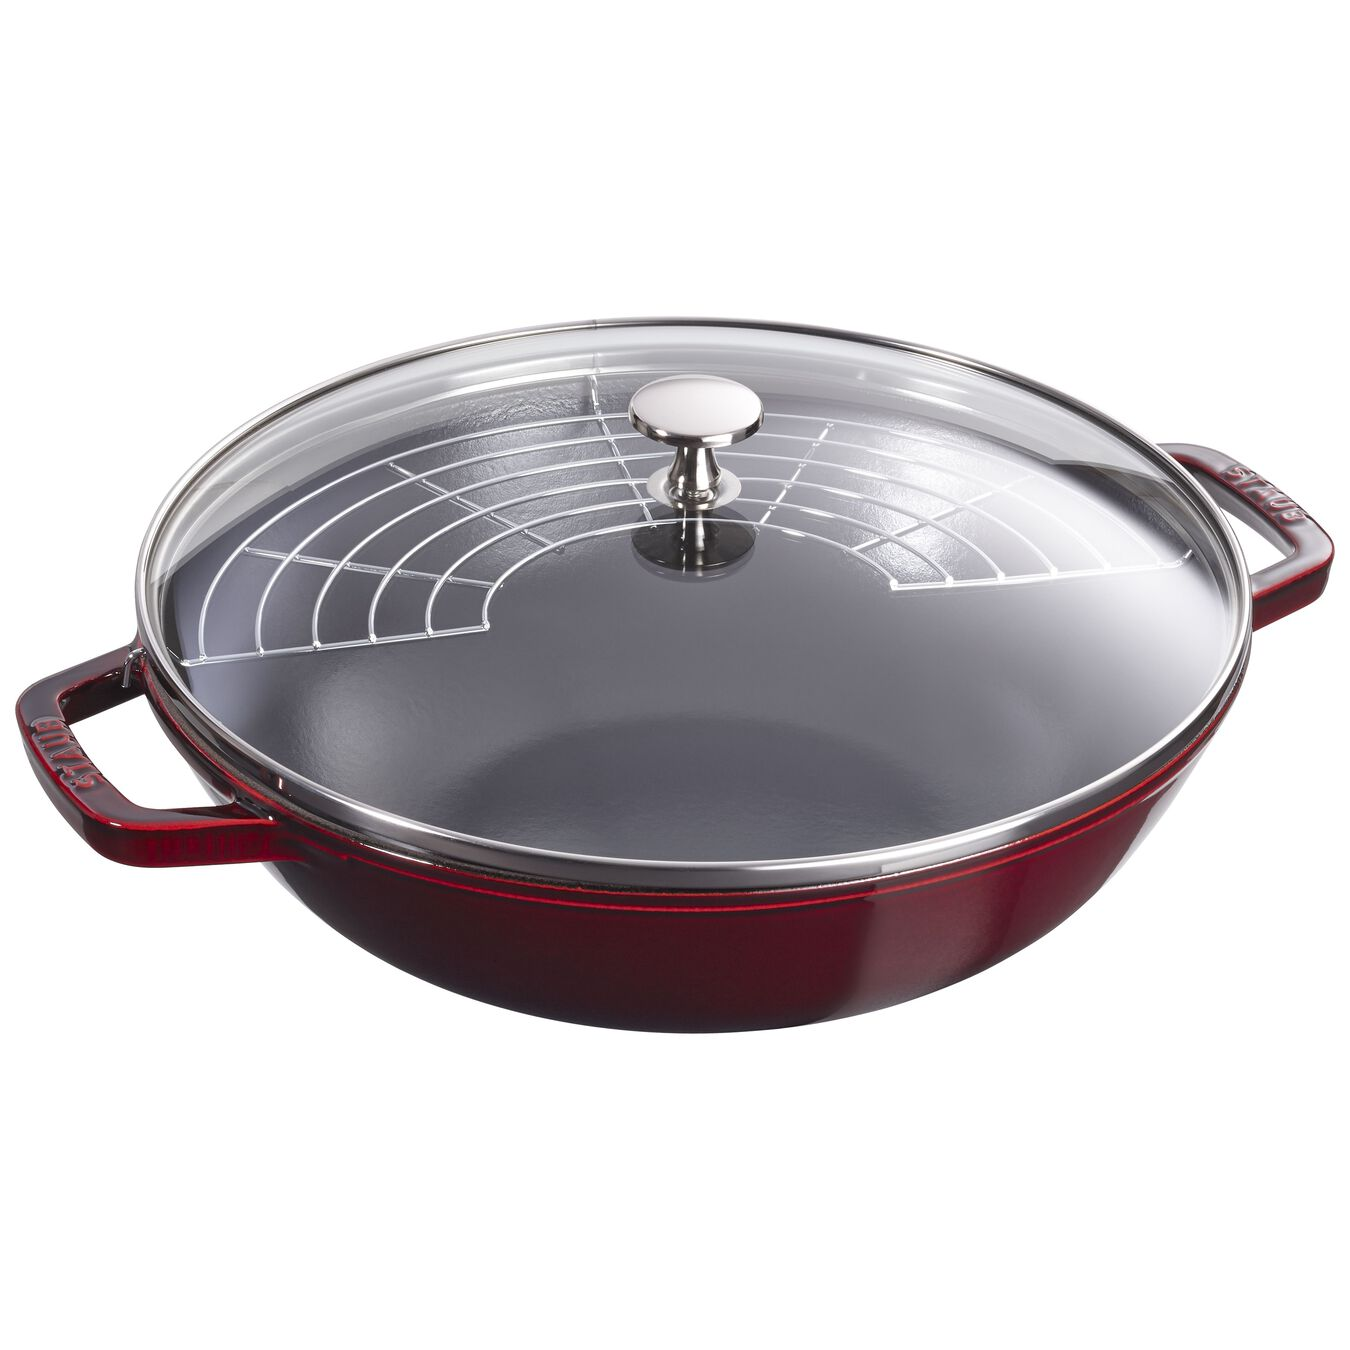 Wok with glass lid 30 cm,,large 5